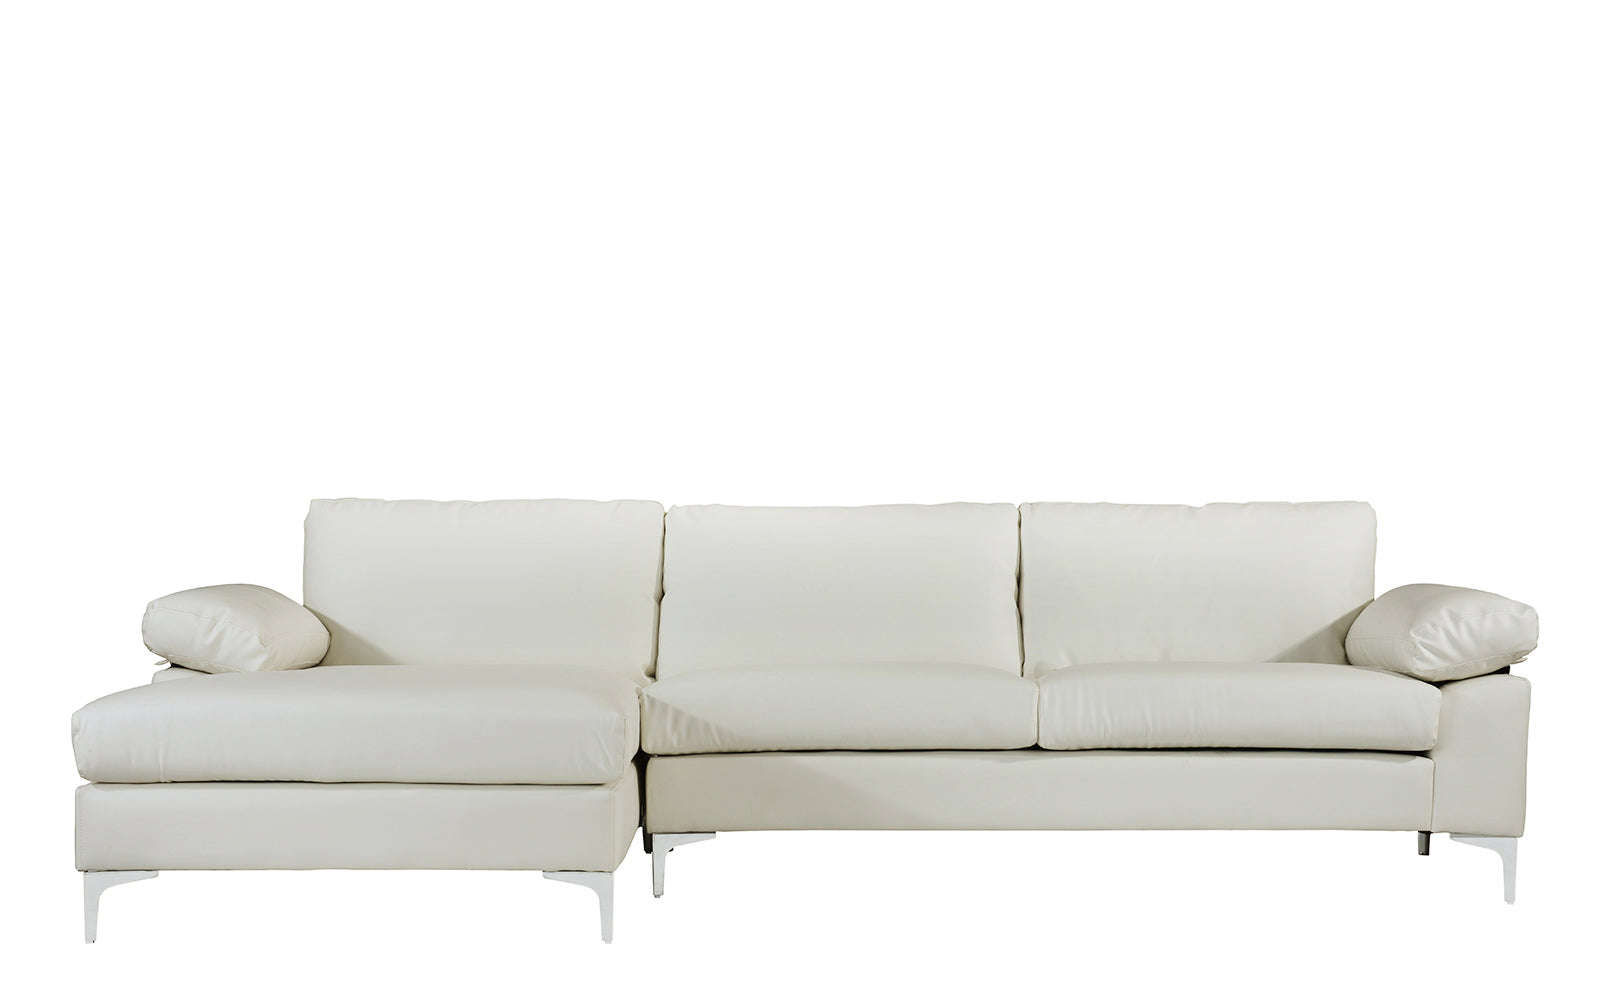 Amanda Modern Faux Leather Large Sectional Sofa  : EXP194 PU WH1 from www.sofamania.com size 1600 x 1000 jpeg 60kB